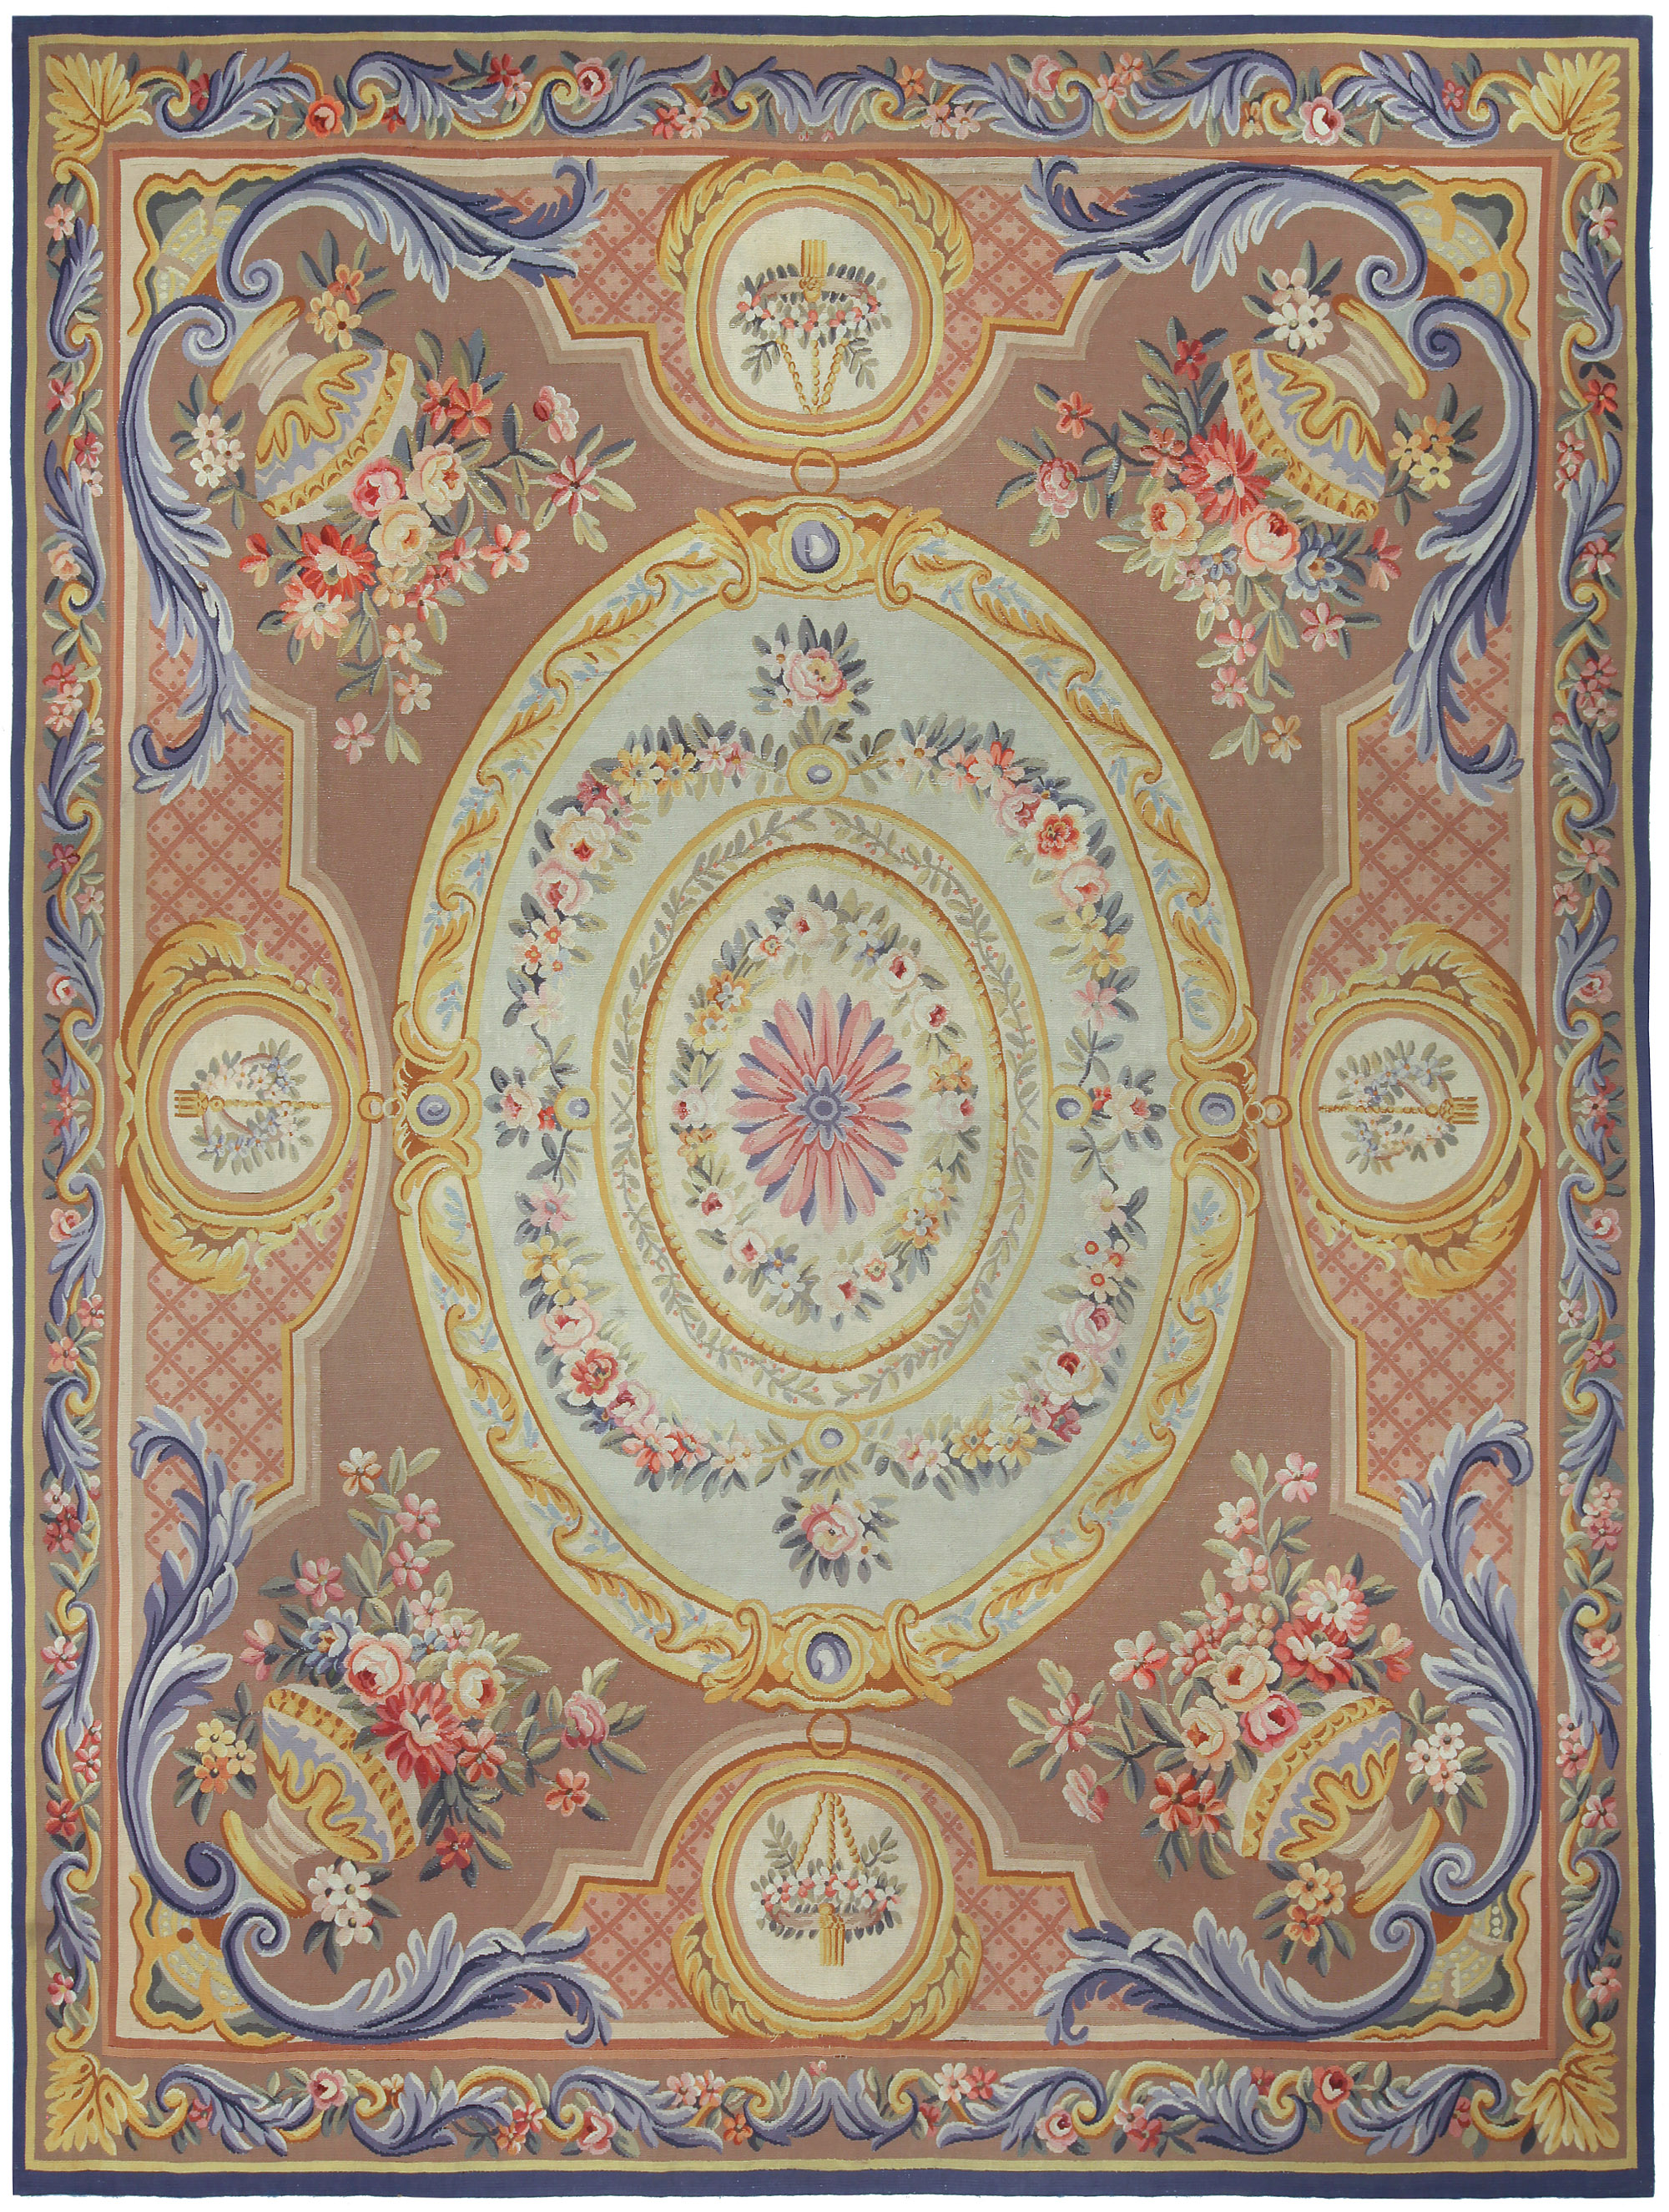 Surprising Aubusson Style Rugs | Cool Aubusson Rugs Idea